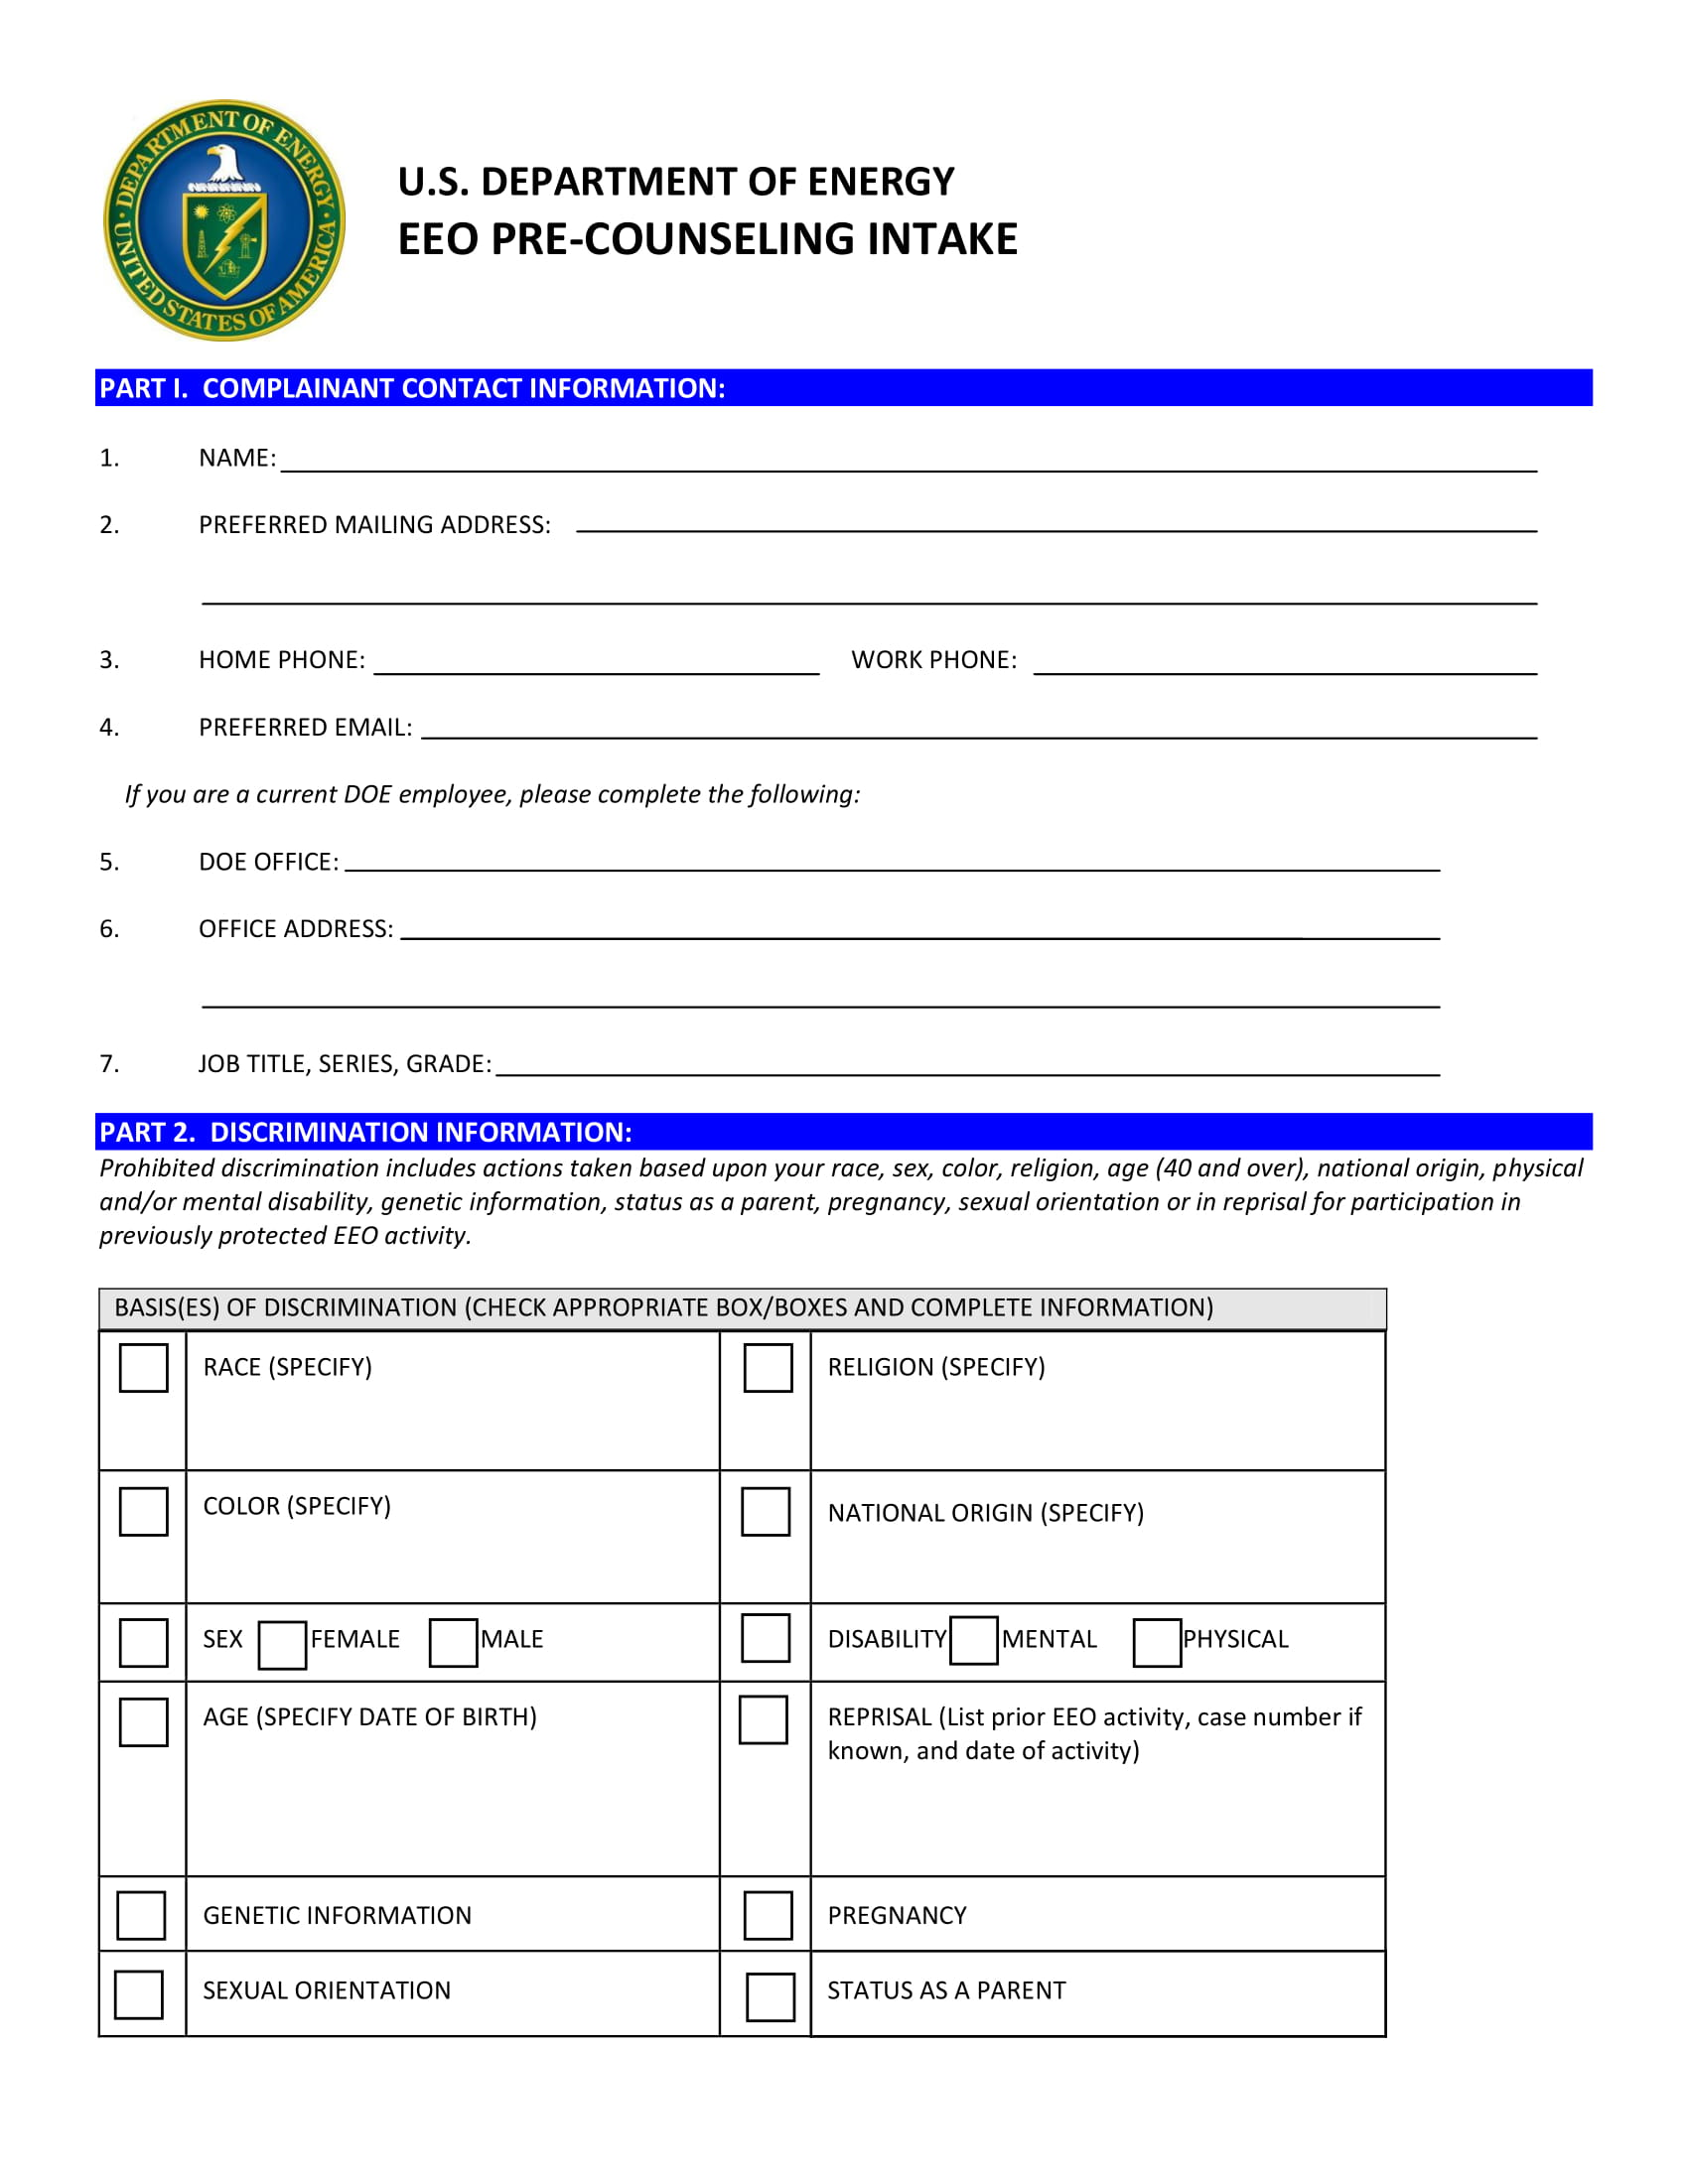 pre counseling intake form 1